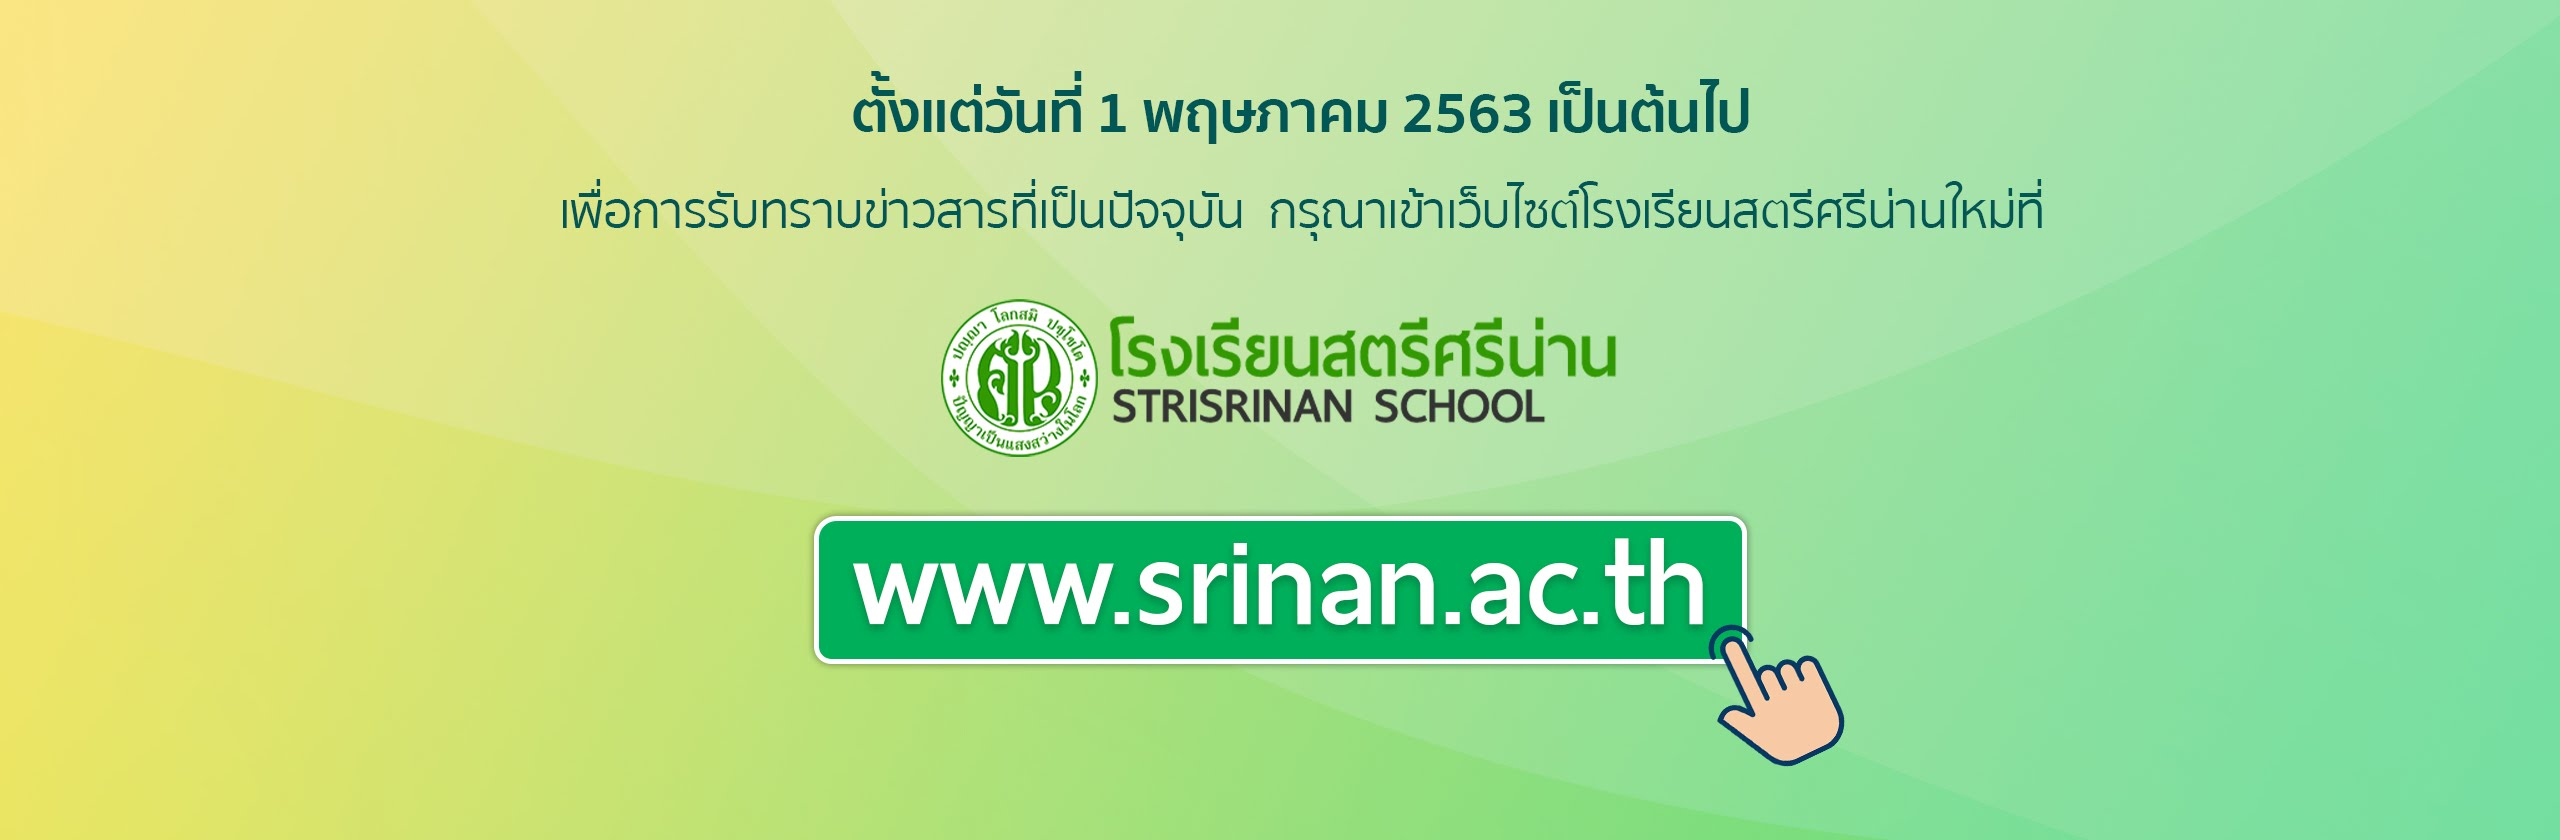 https://www.srinan.ac.th/